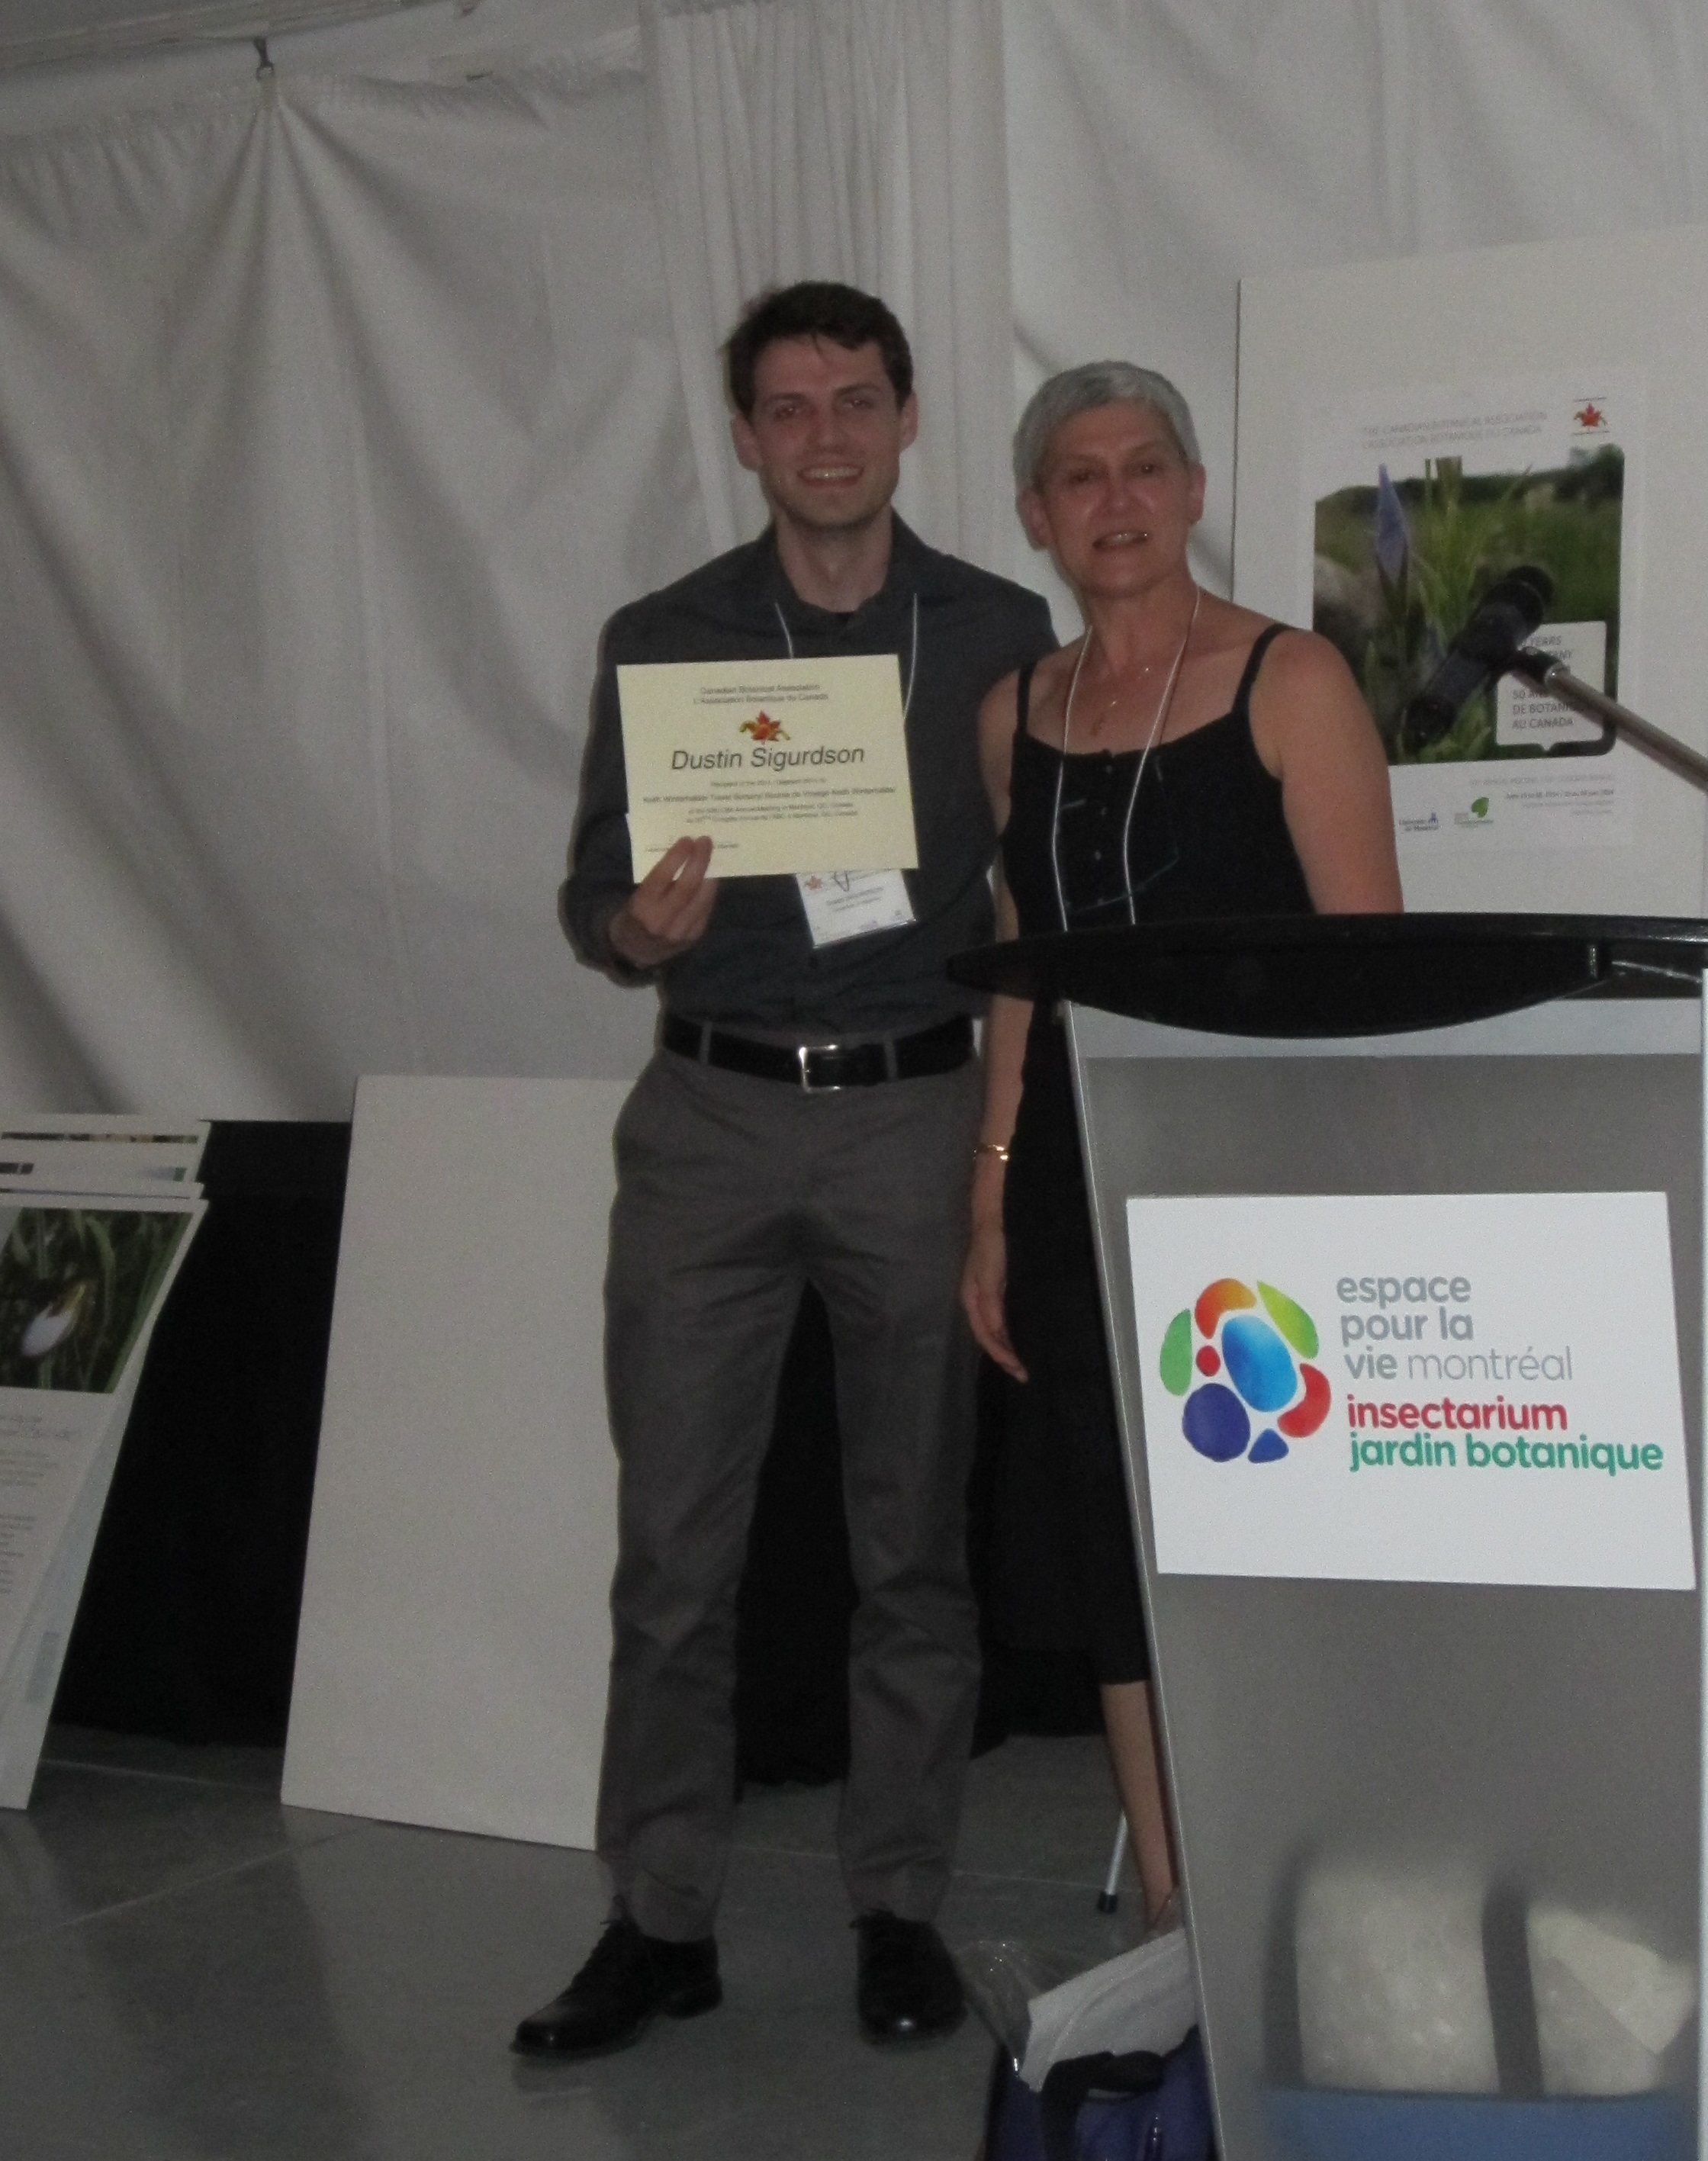 Dustin Sigurdson receiving award from Frederique Guinel